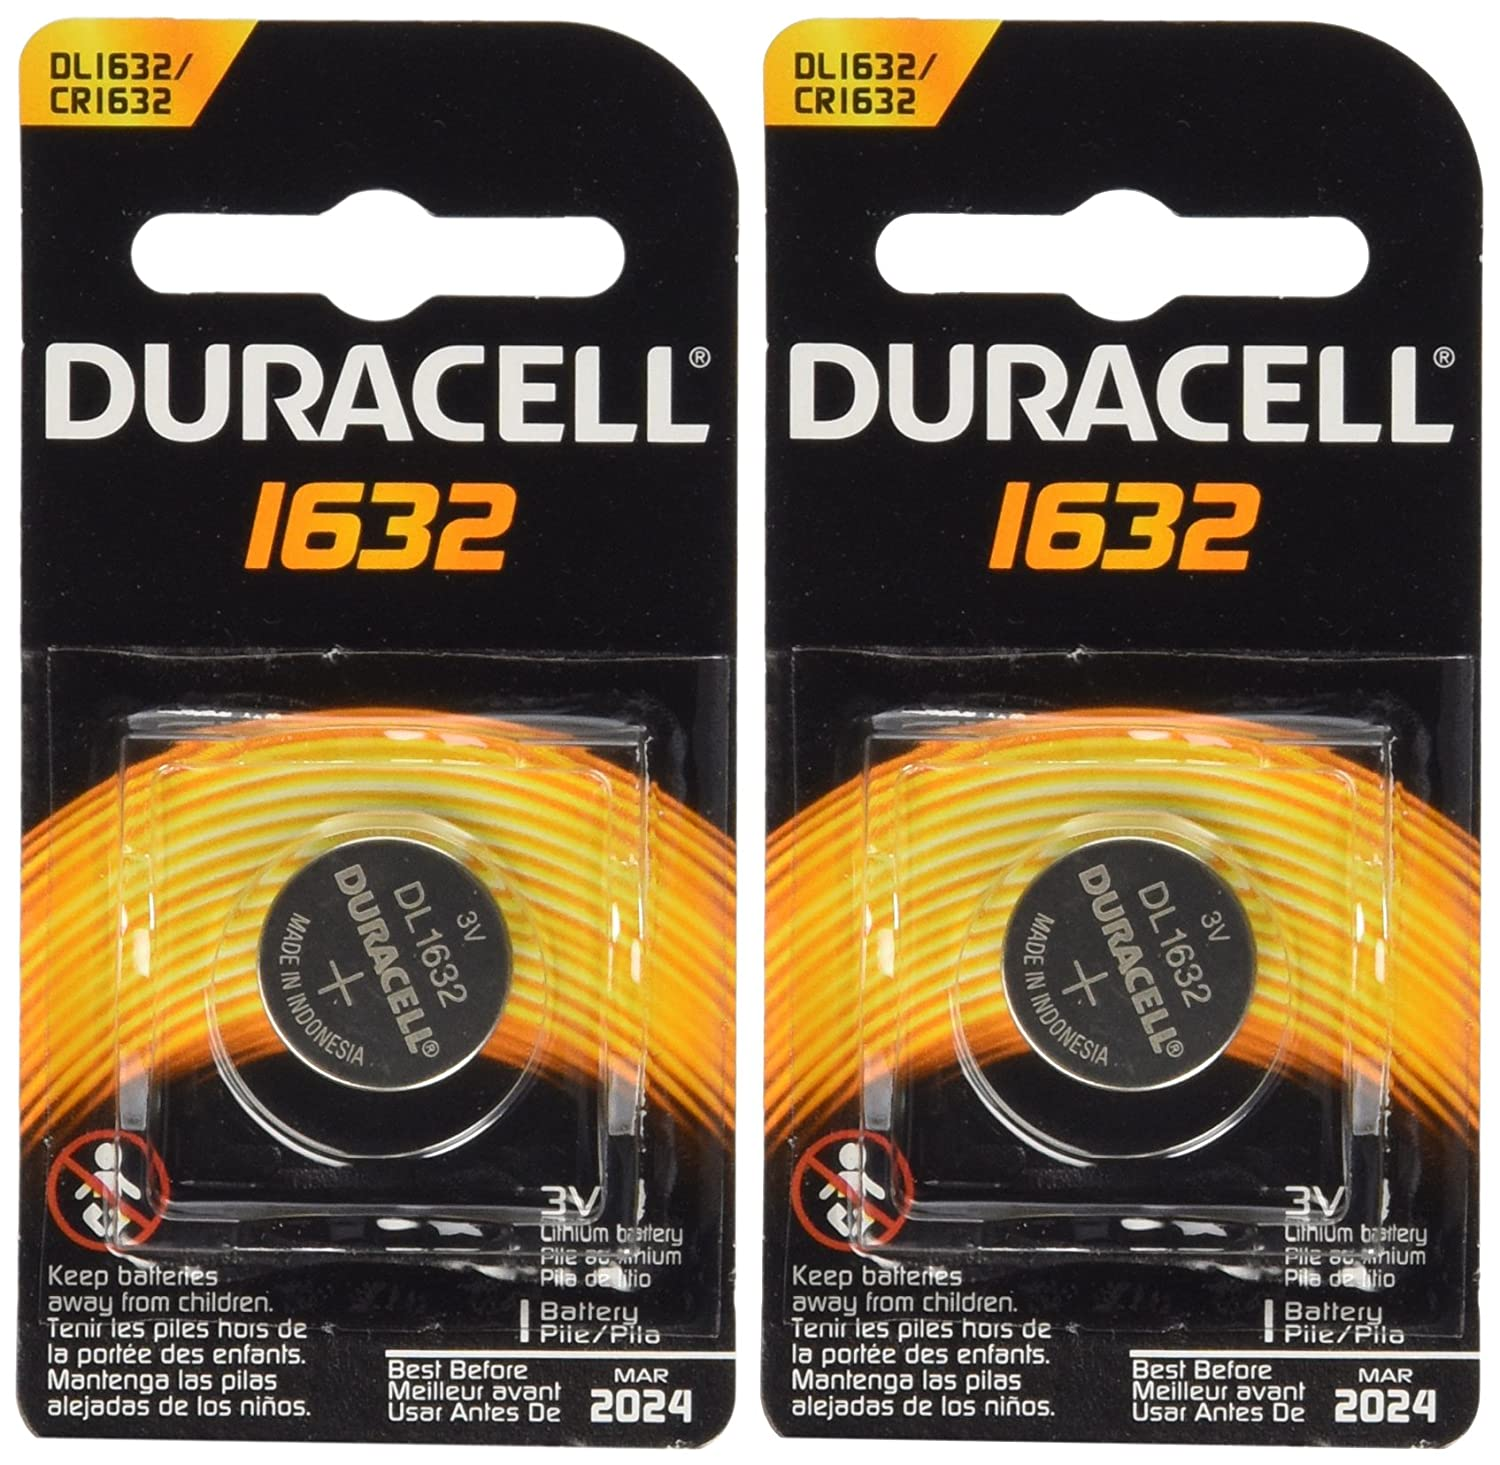 Amazon.com: 3 X 2 Duracell Cr1632 1632 Car Remote Batteries: Health &  Personal Care